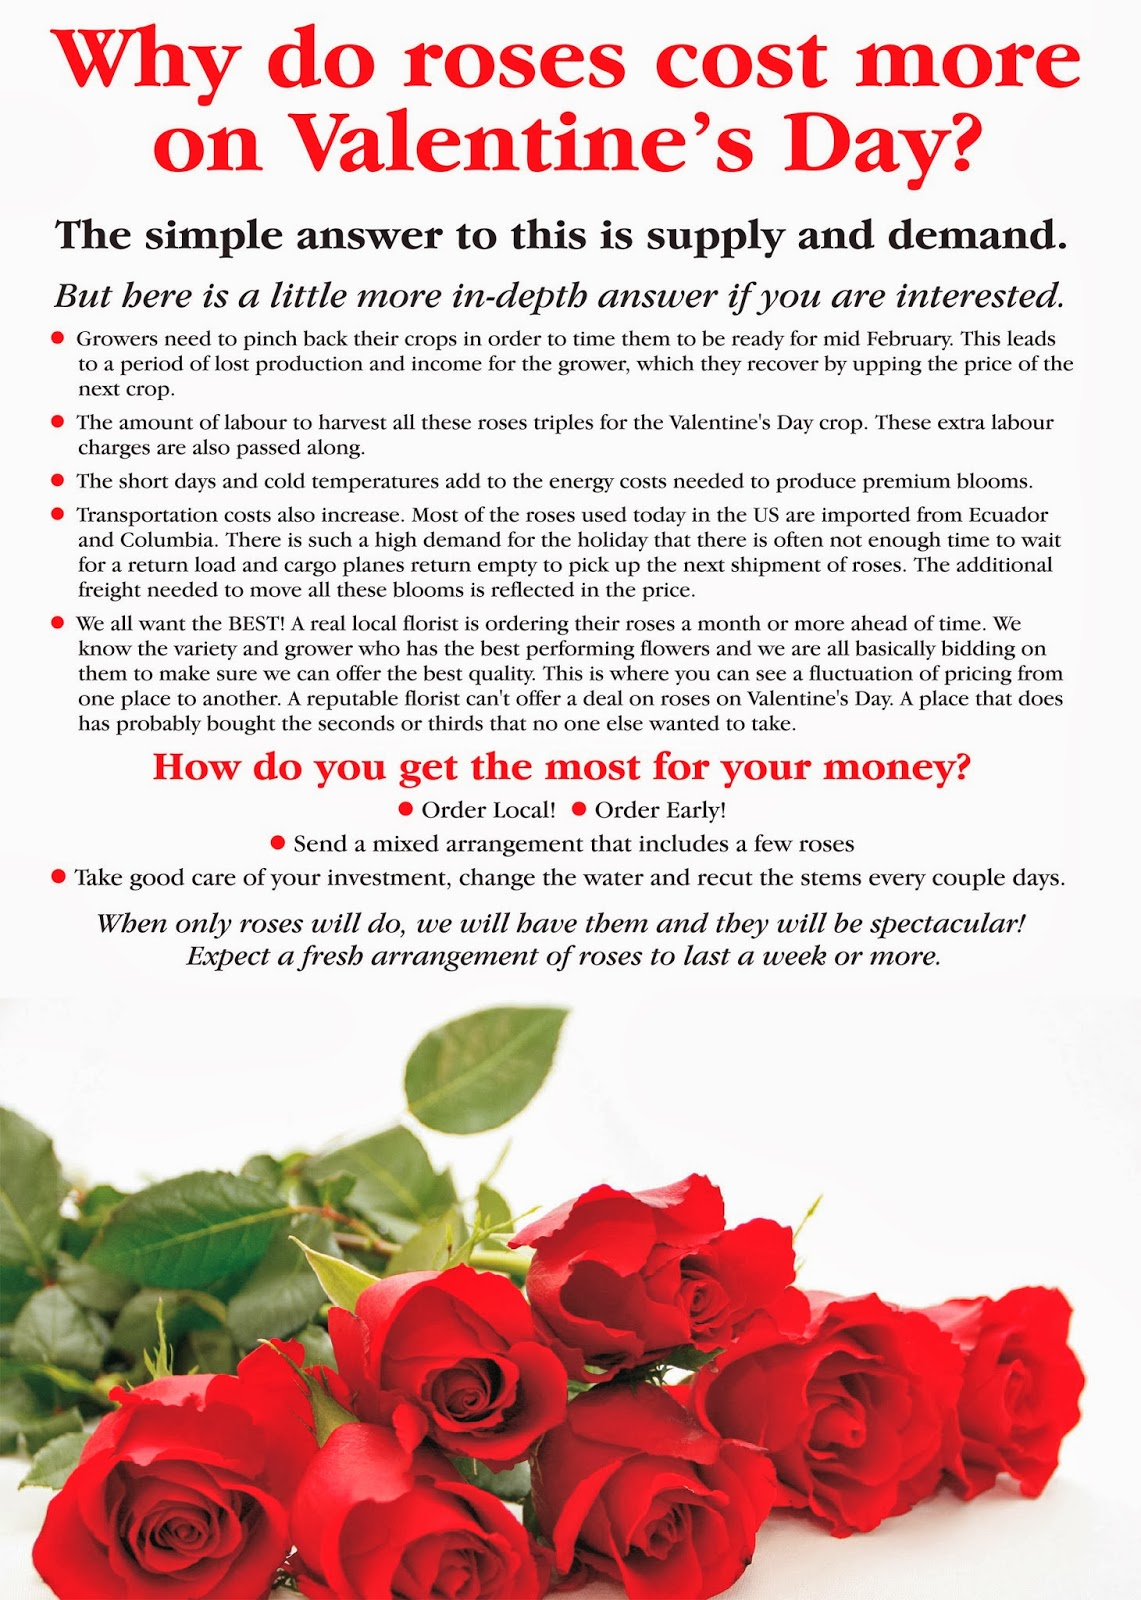 How to take care of roses - Do You Wonder Why Flowers And Roses In Particular Cost More On St Valentines Day Here Is A Quick Explanation